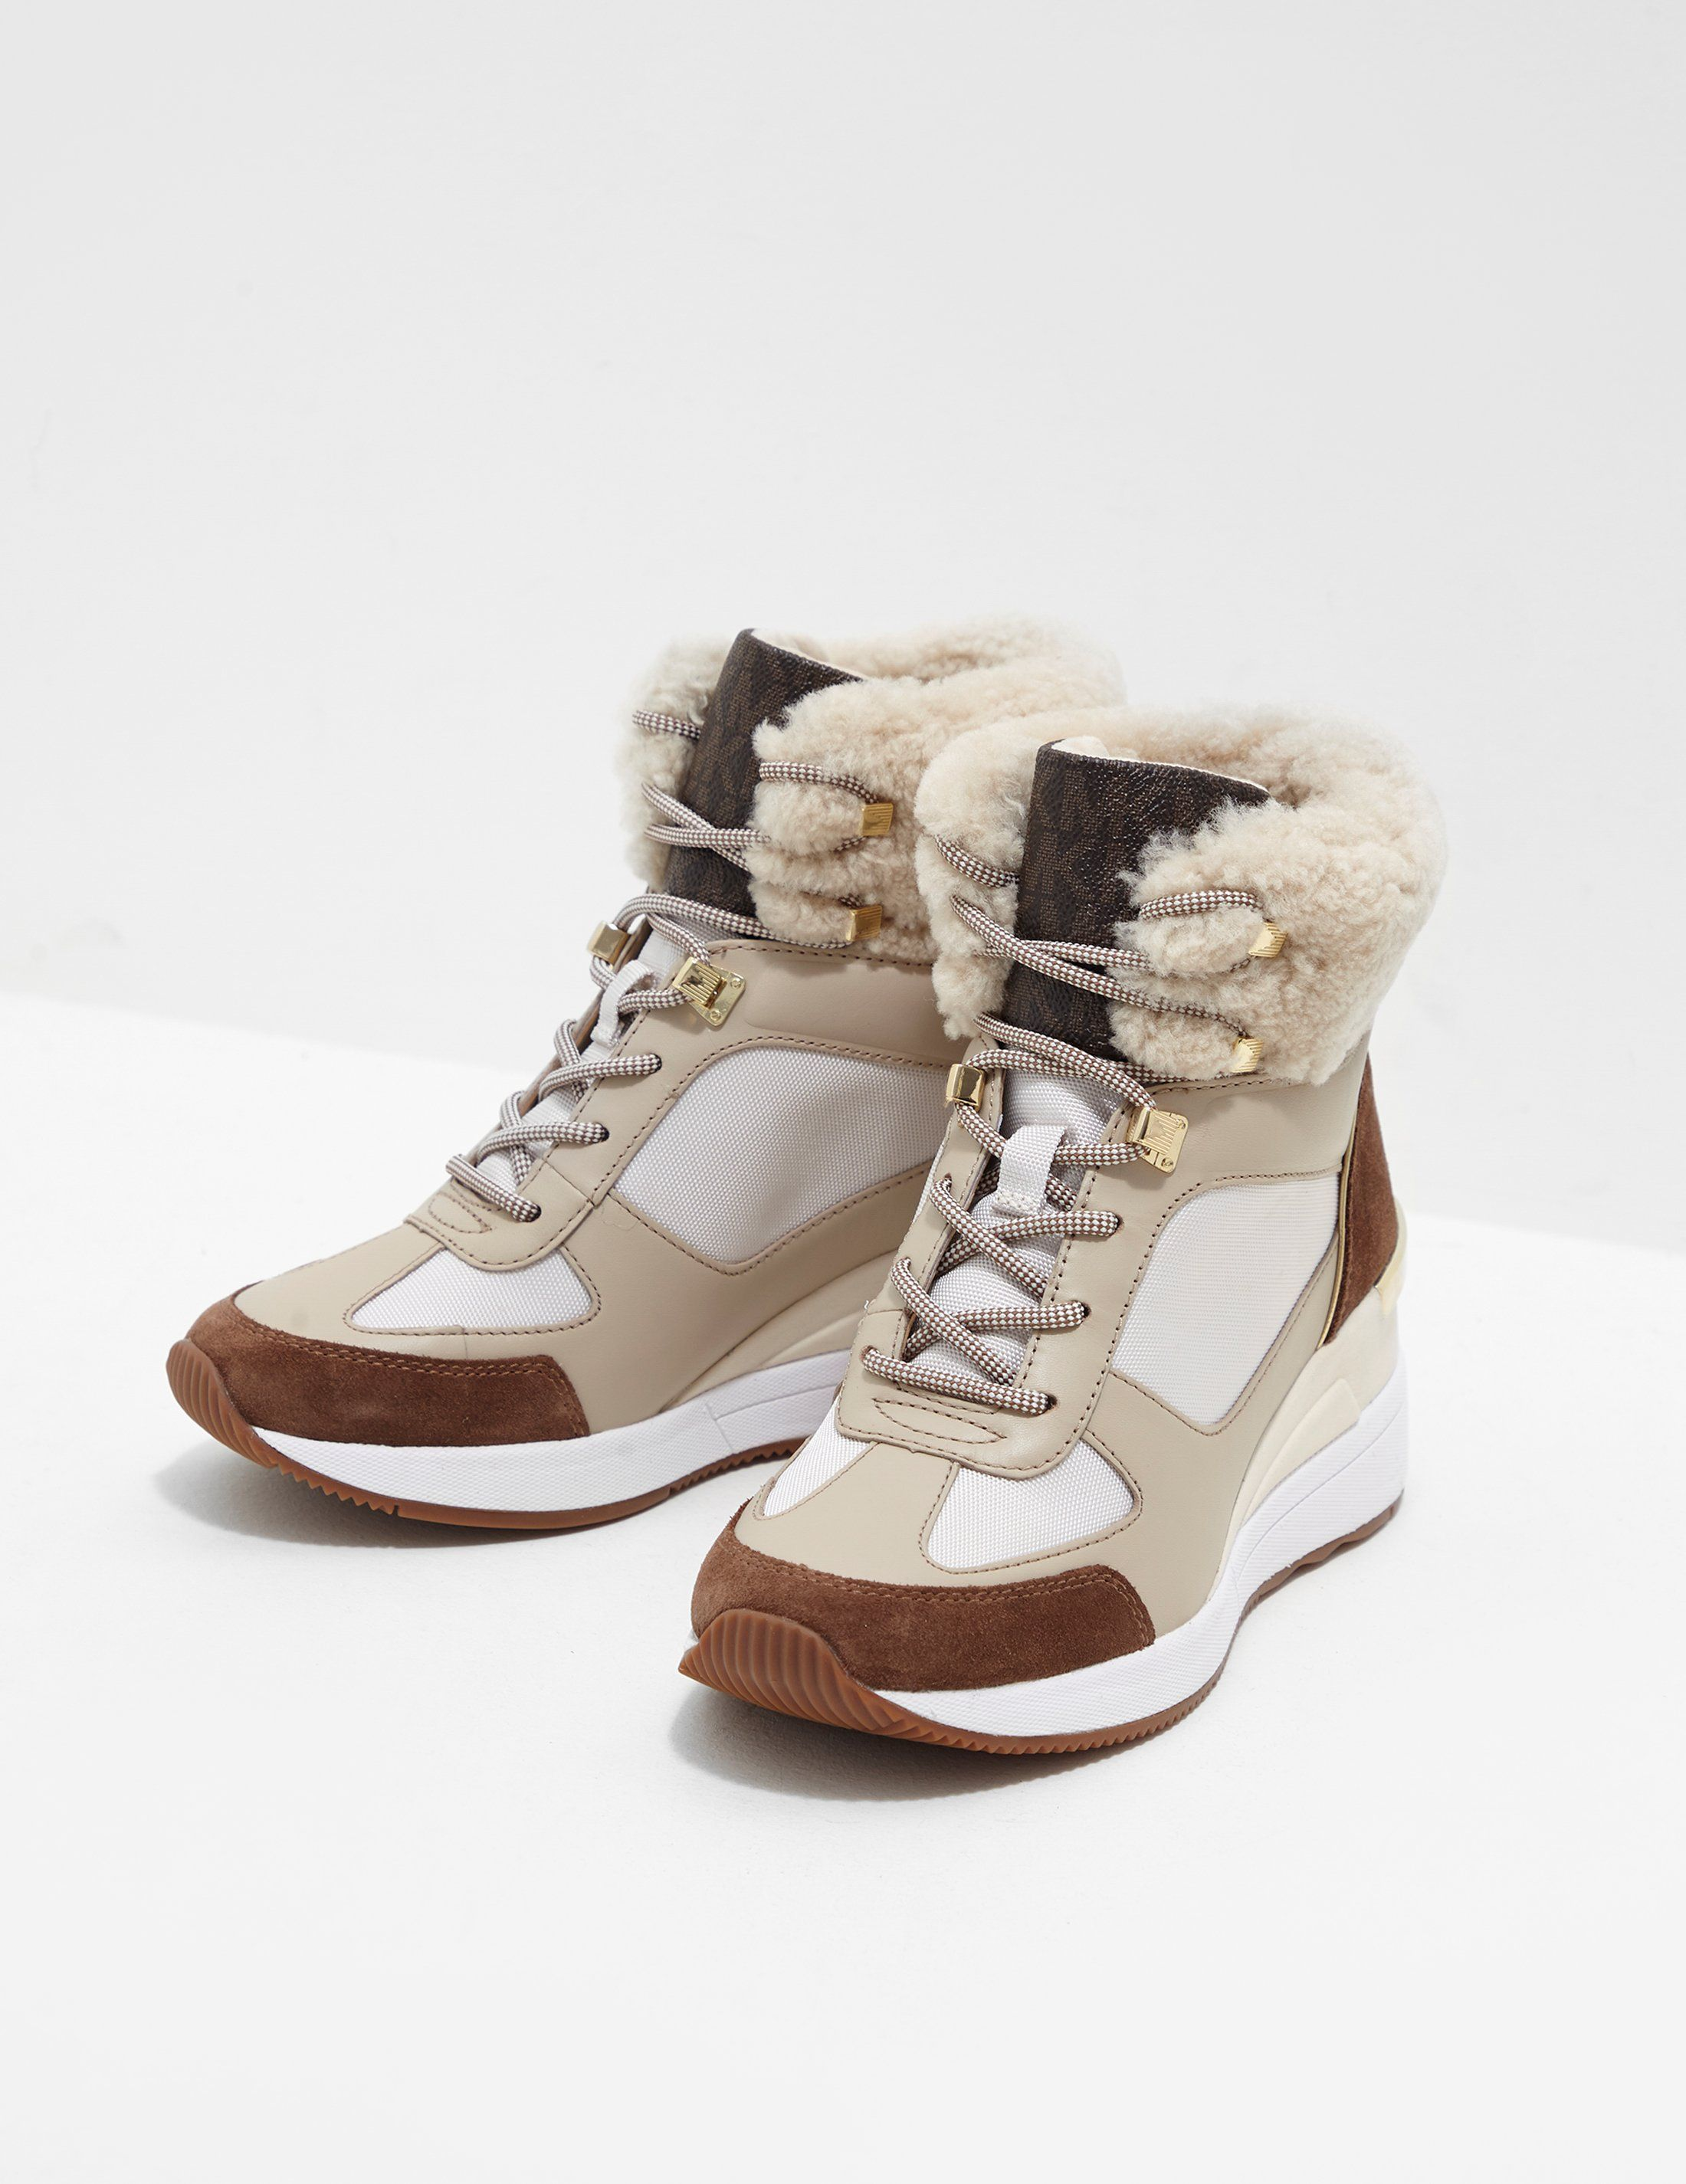 Michael Kors Scout Boot